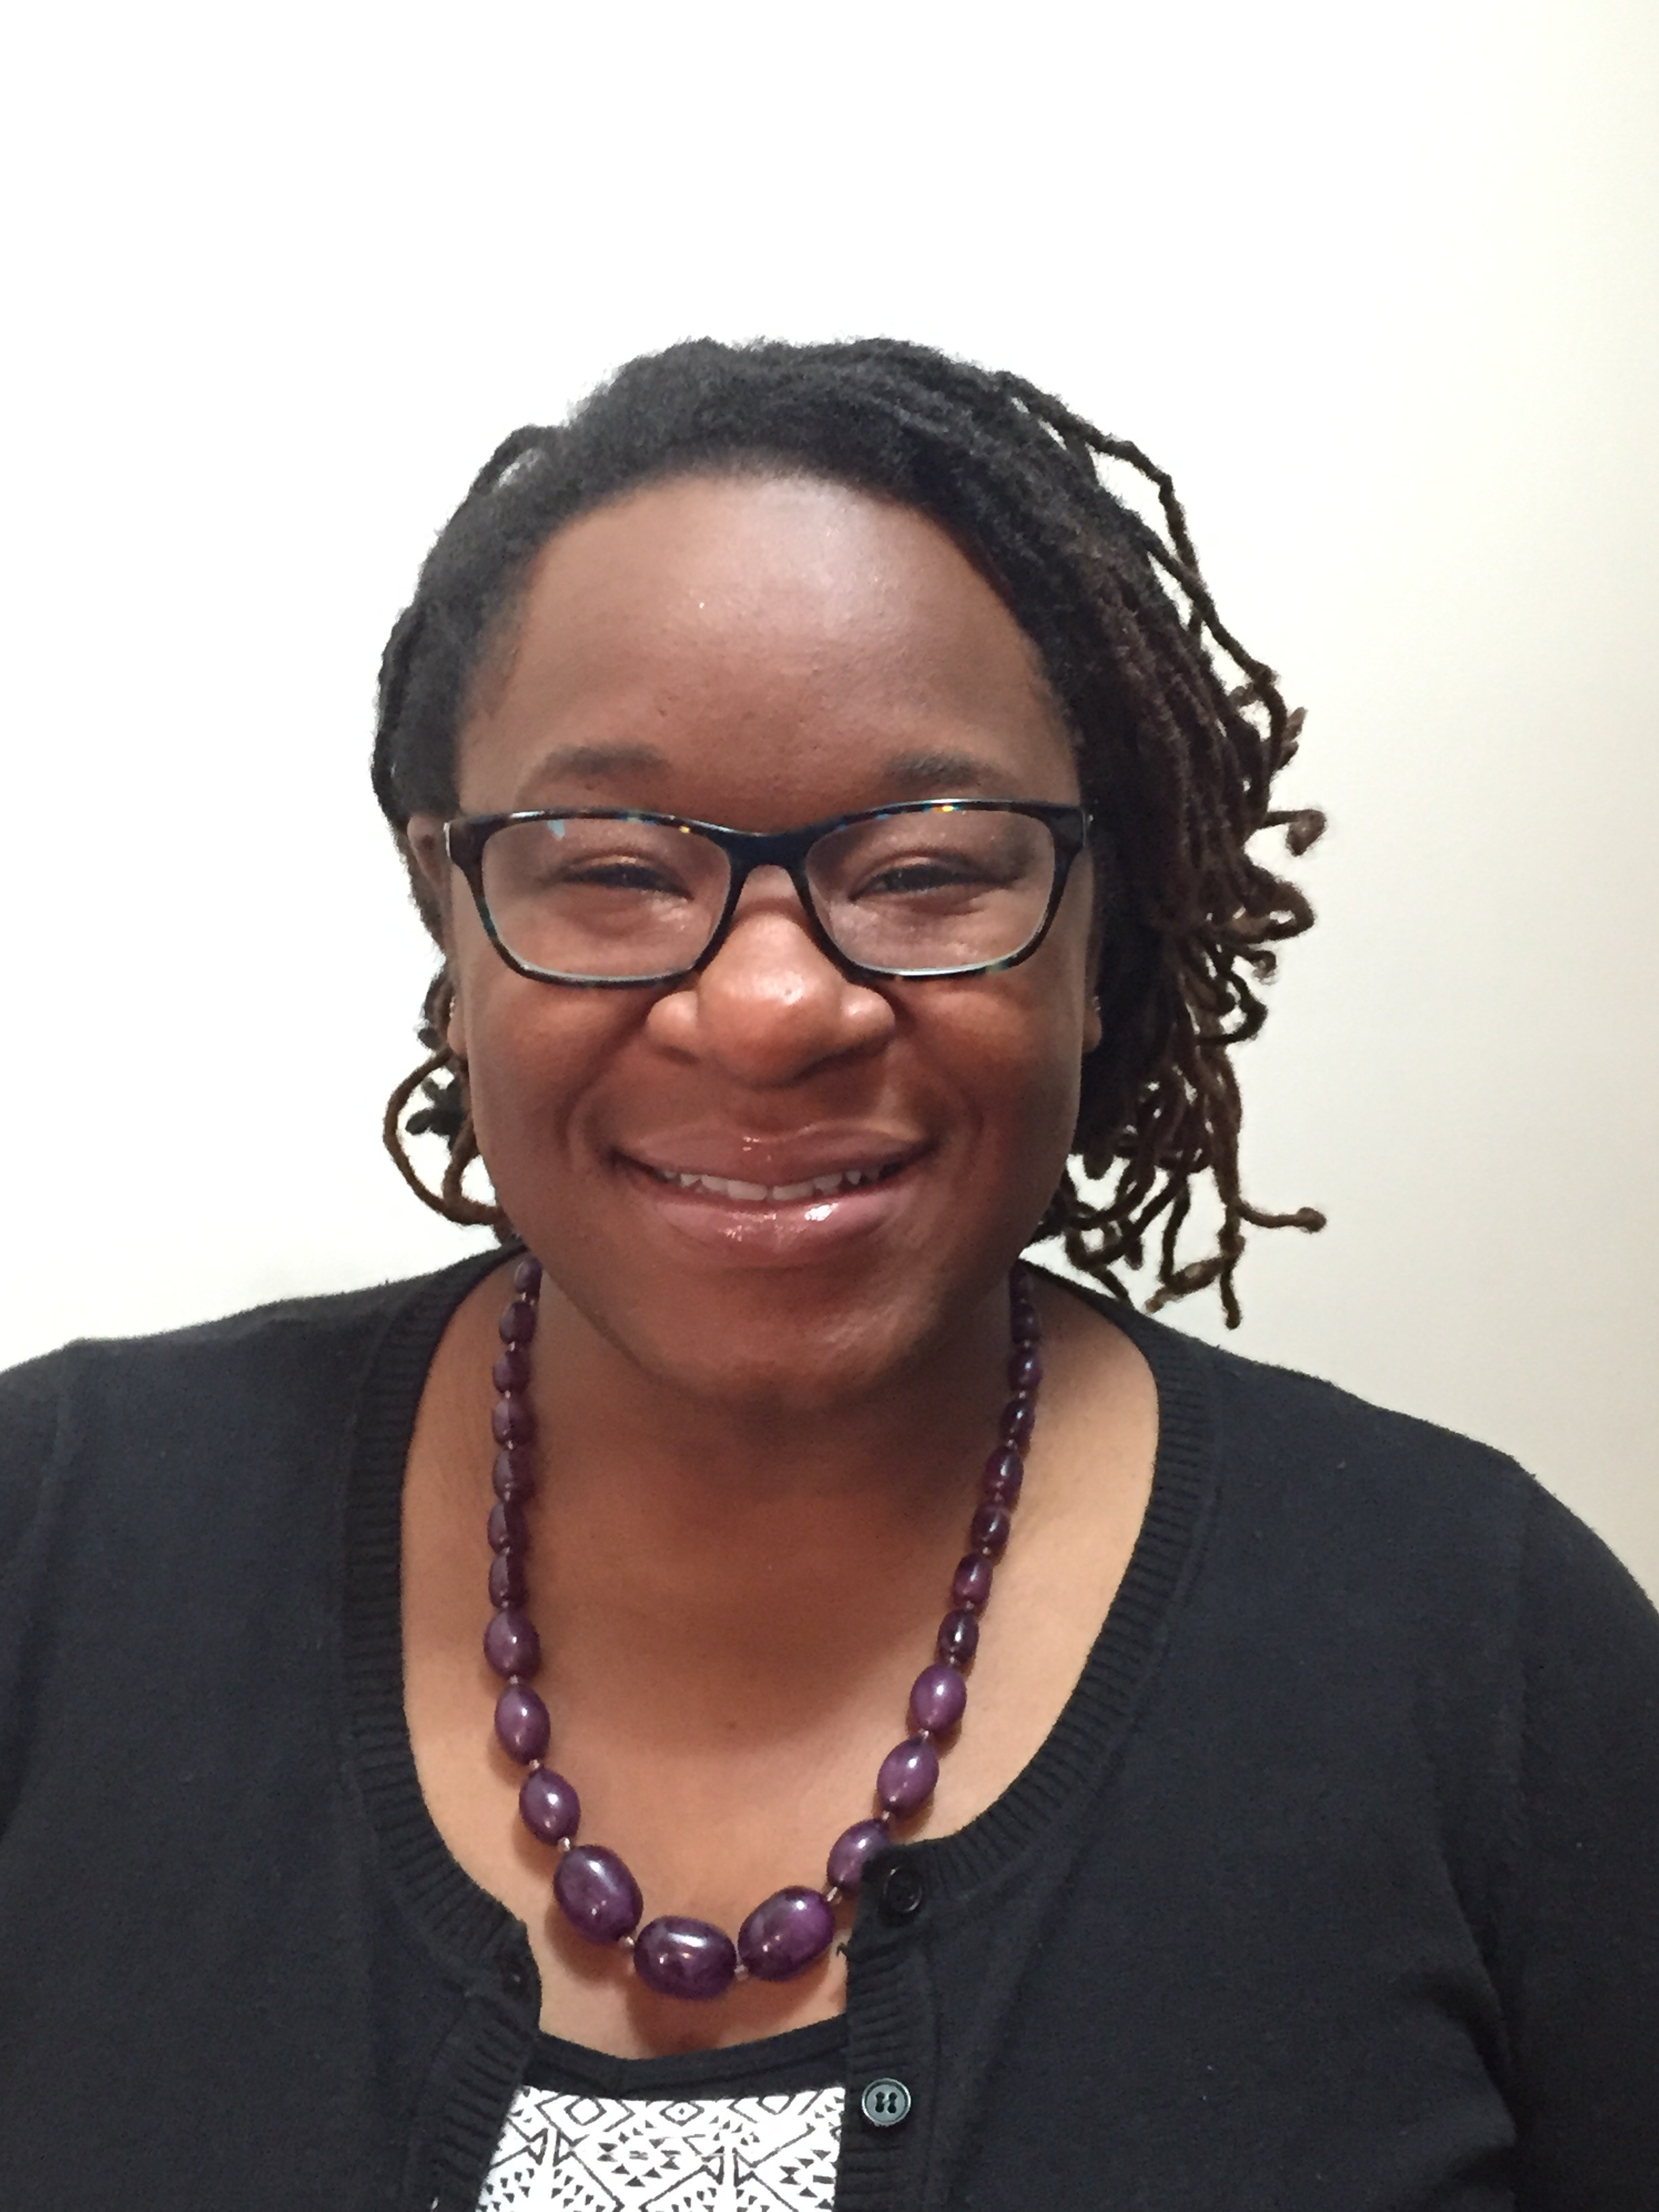 Meet Tiffany McAfee, Matchbook Learning's new Director of Personalized Learning at Merit Prep!